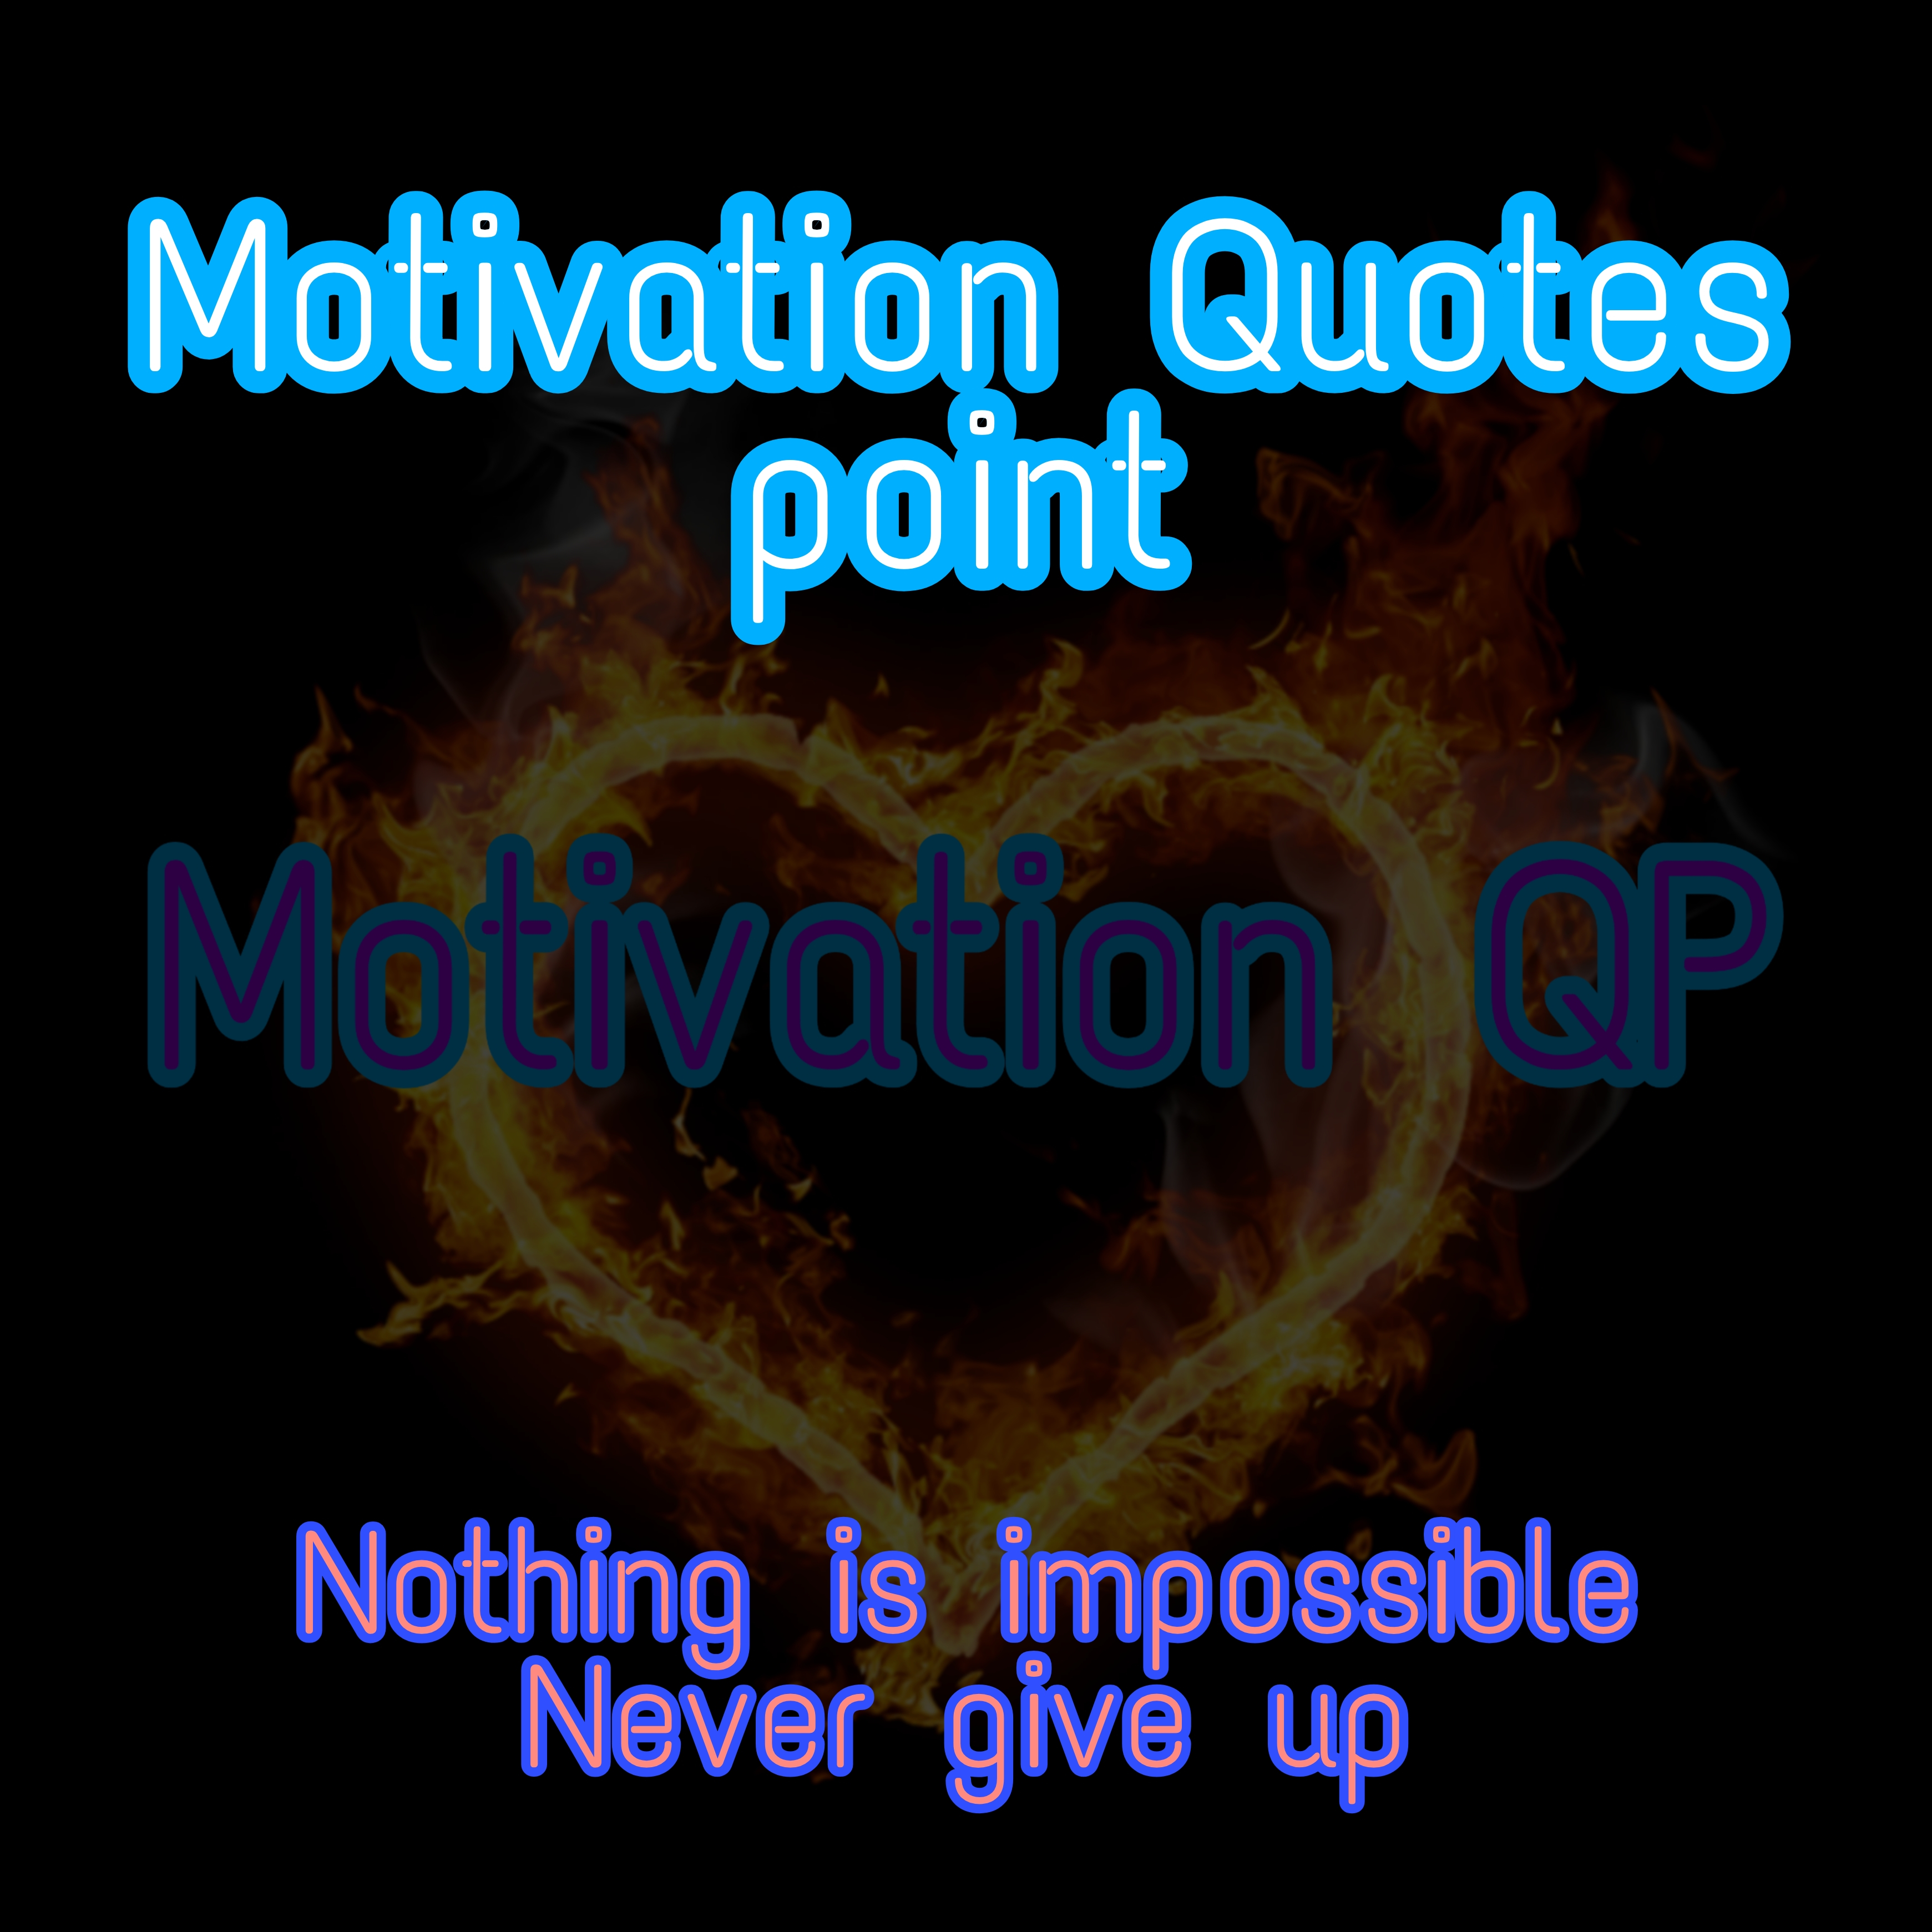 Motivation Quotes point